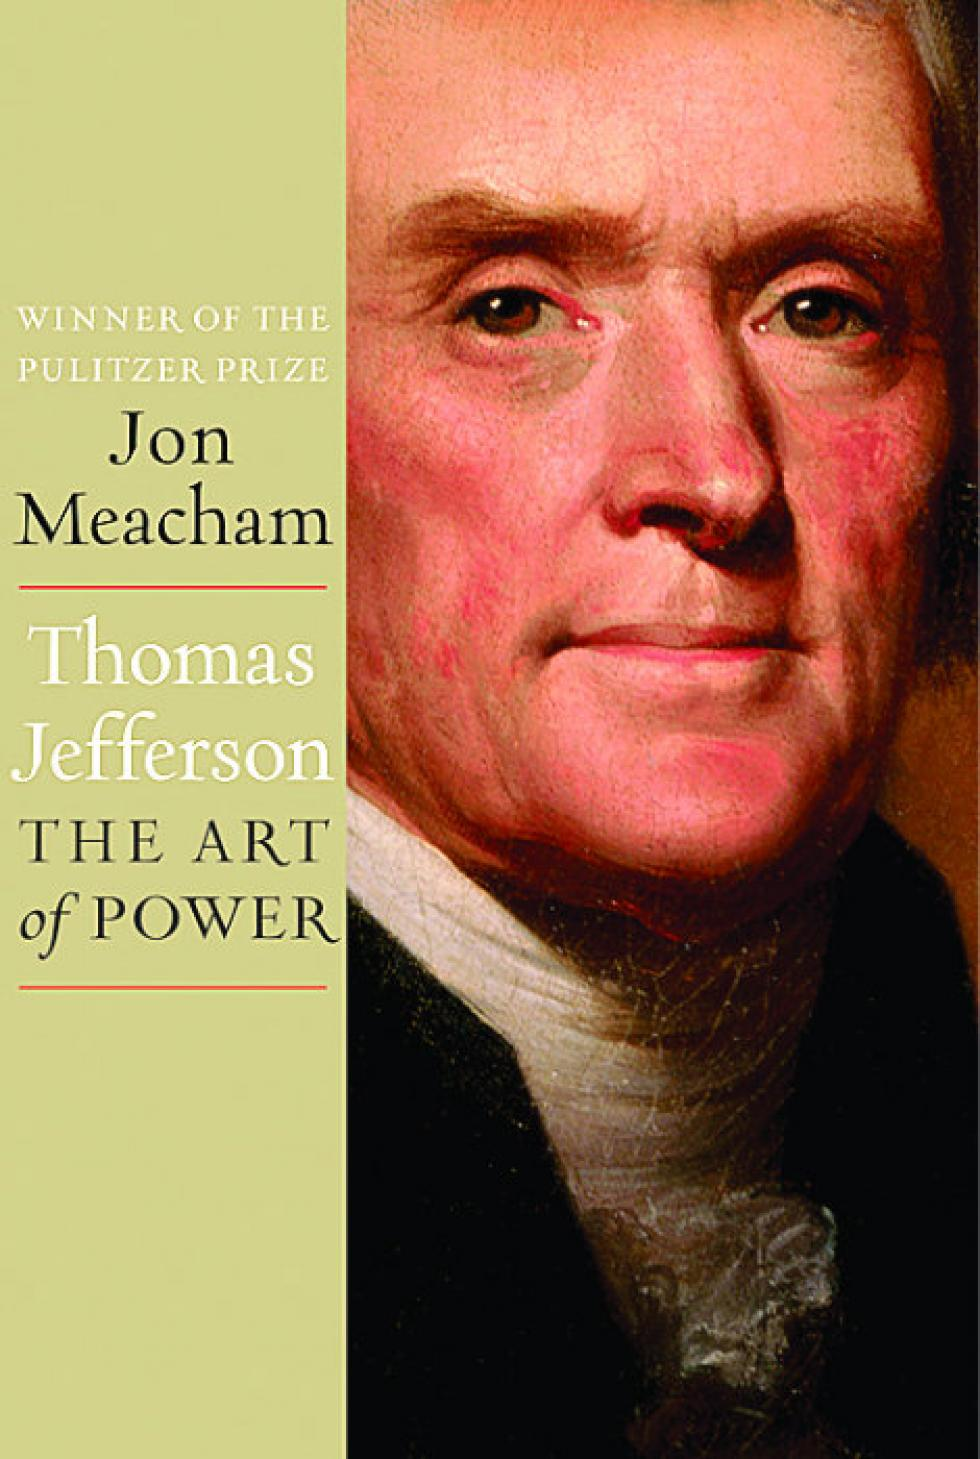 Jon Meacham's highly readable Jefferson biography is worth your time.